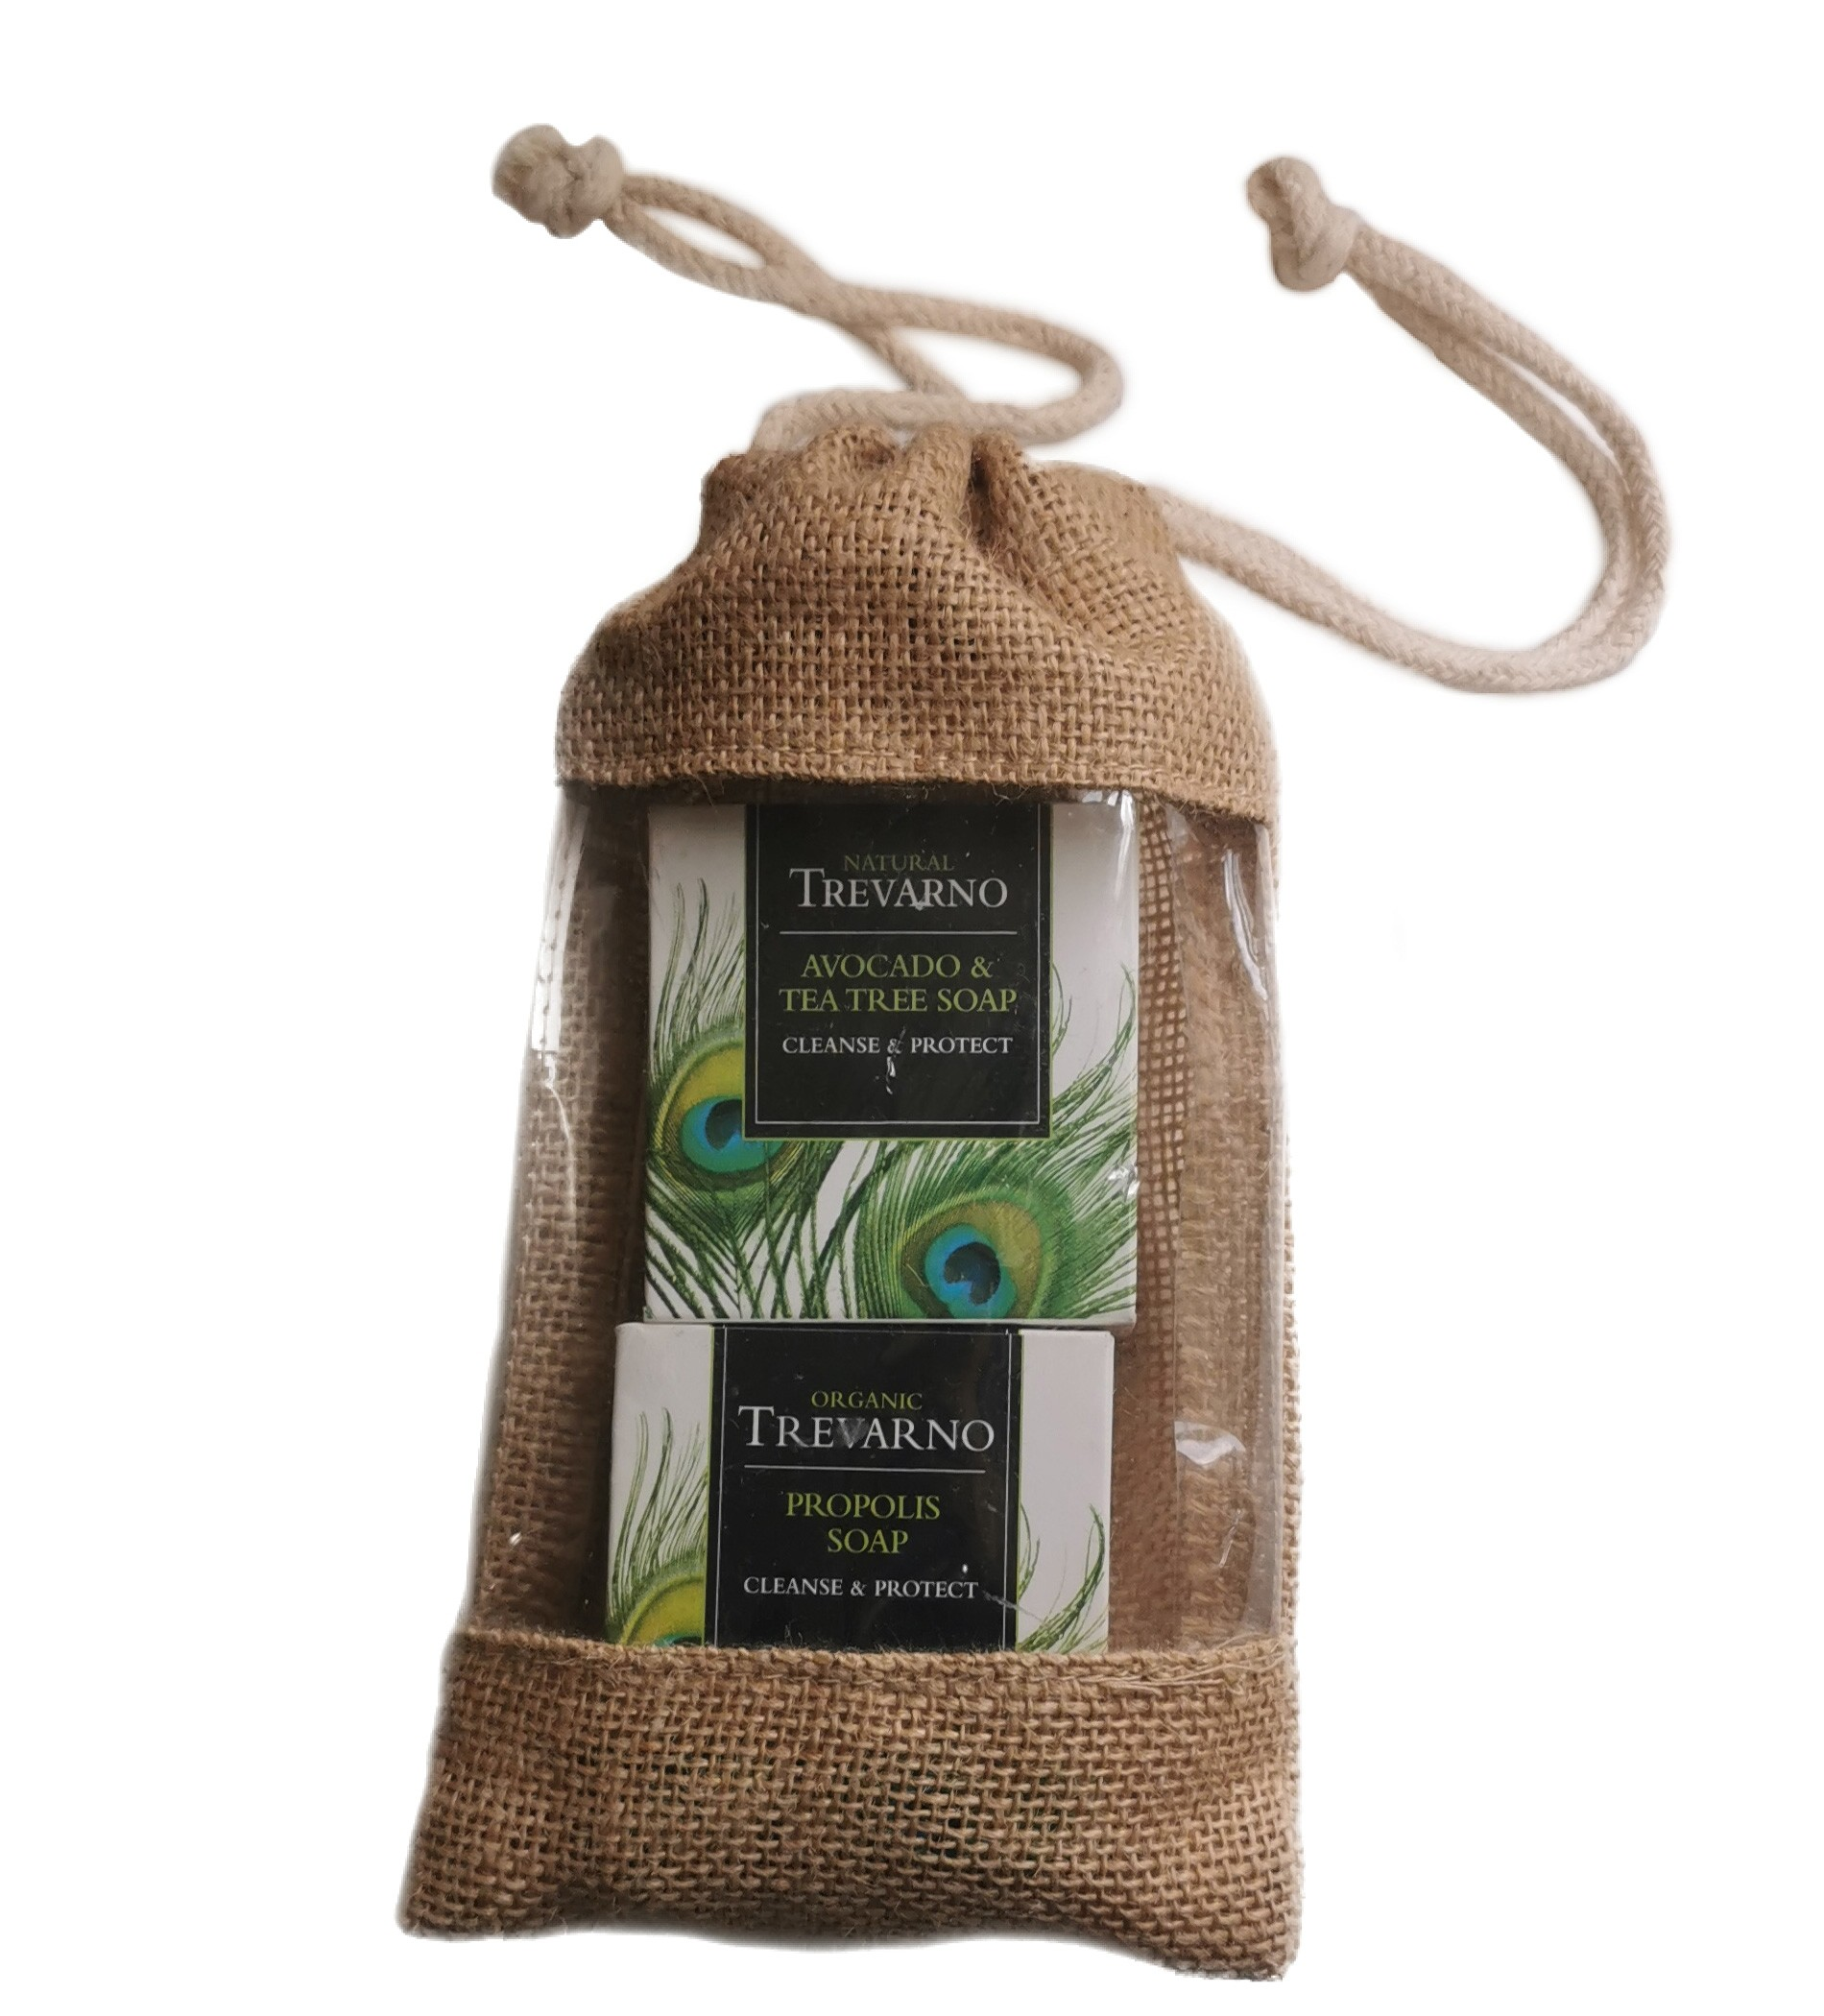 Trevarno Cleanse & Protect Soap Gift Set